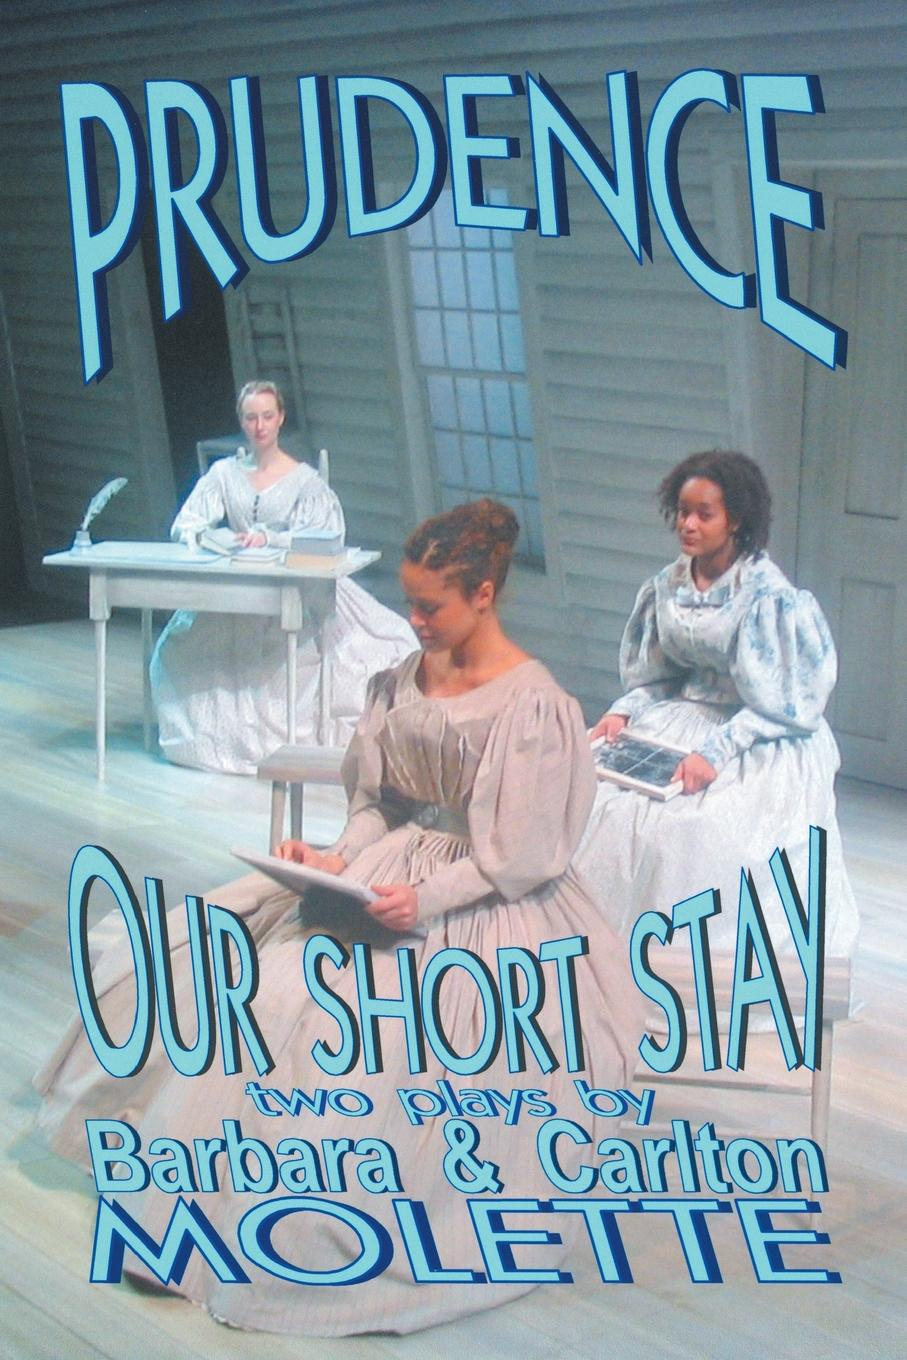 Barbara & Carlton Molette Prudence and Our Short Stay two plays by